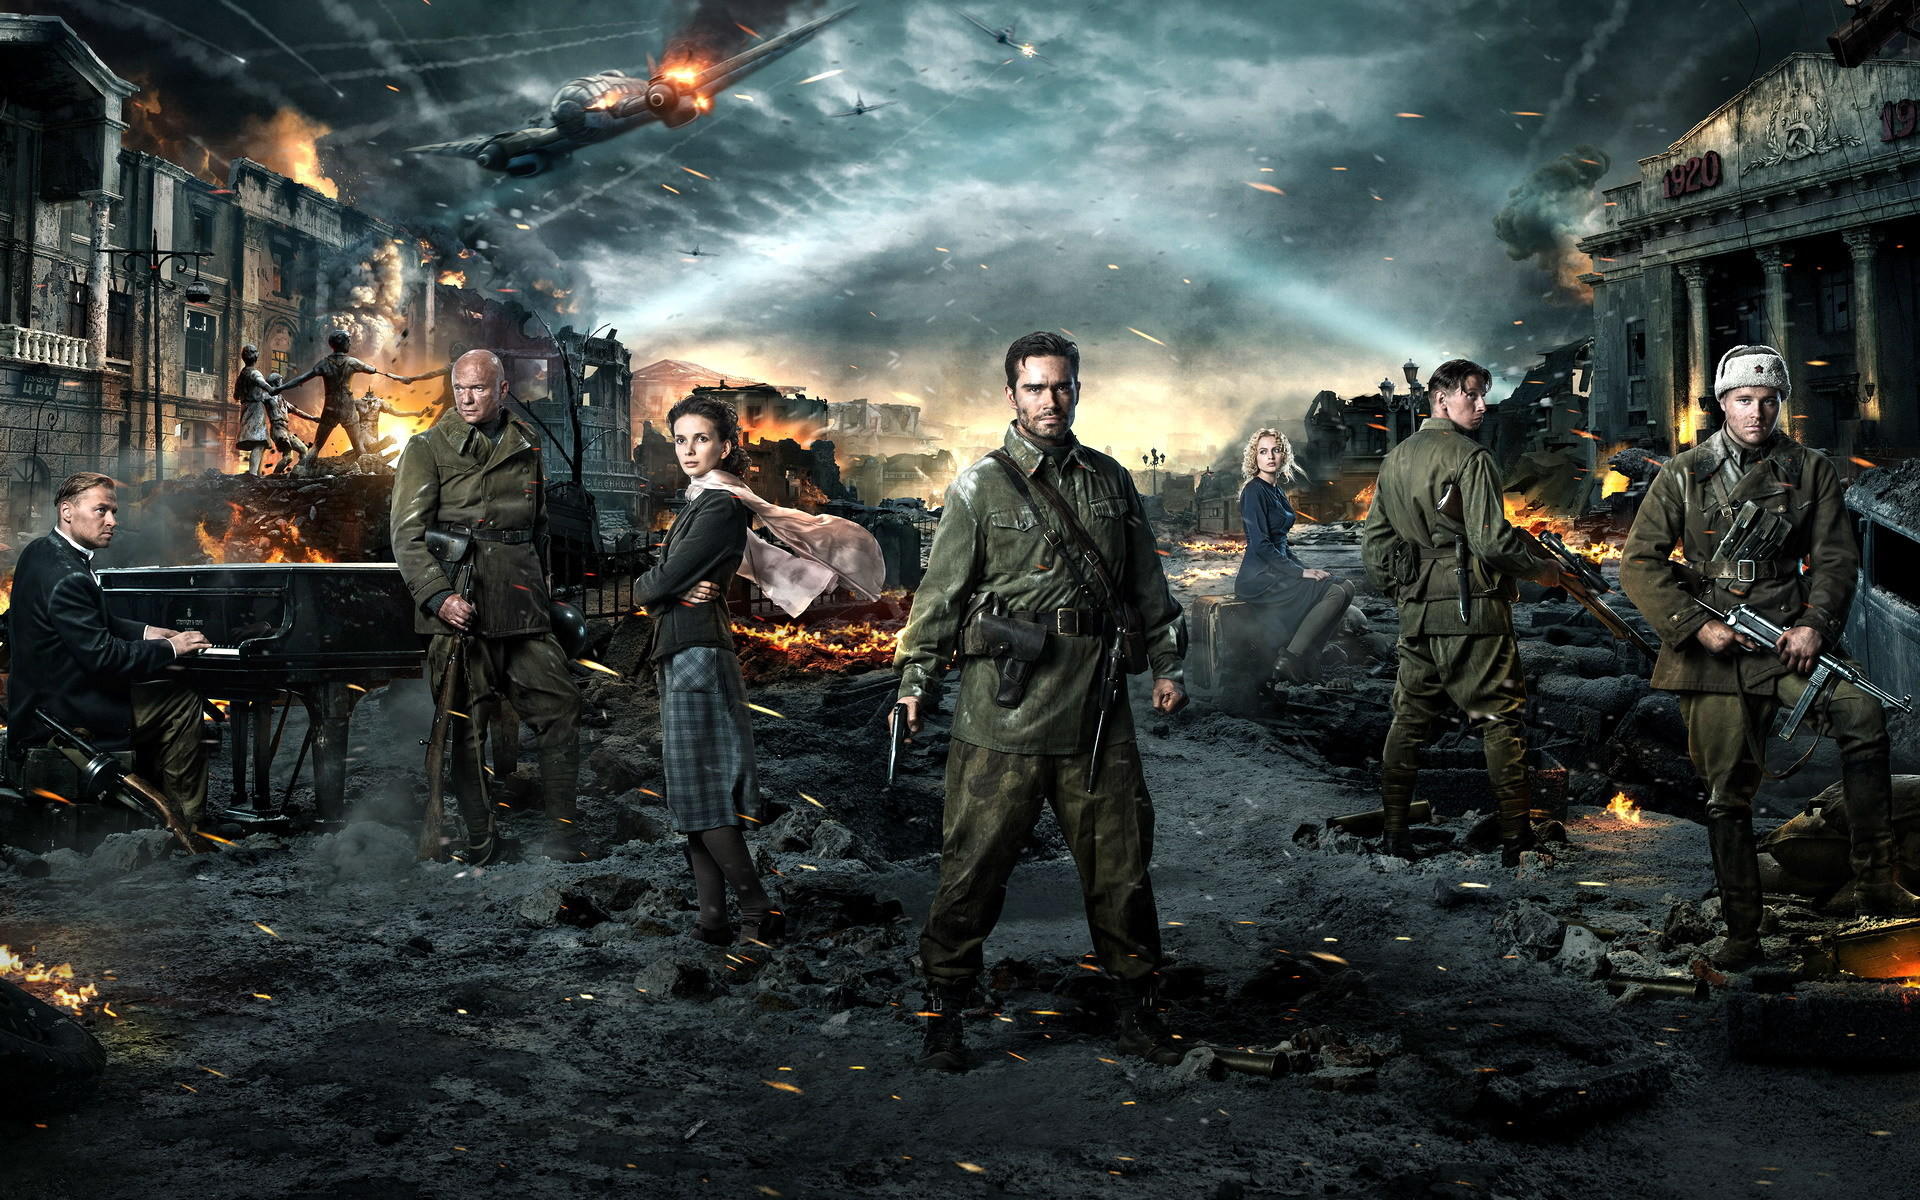 1920x1200 Stalingrad Movie HD Full Screen Wallpaper